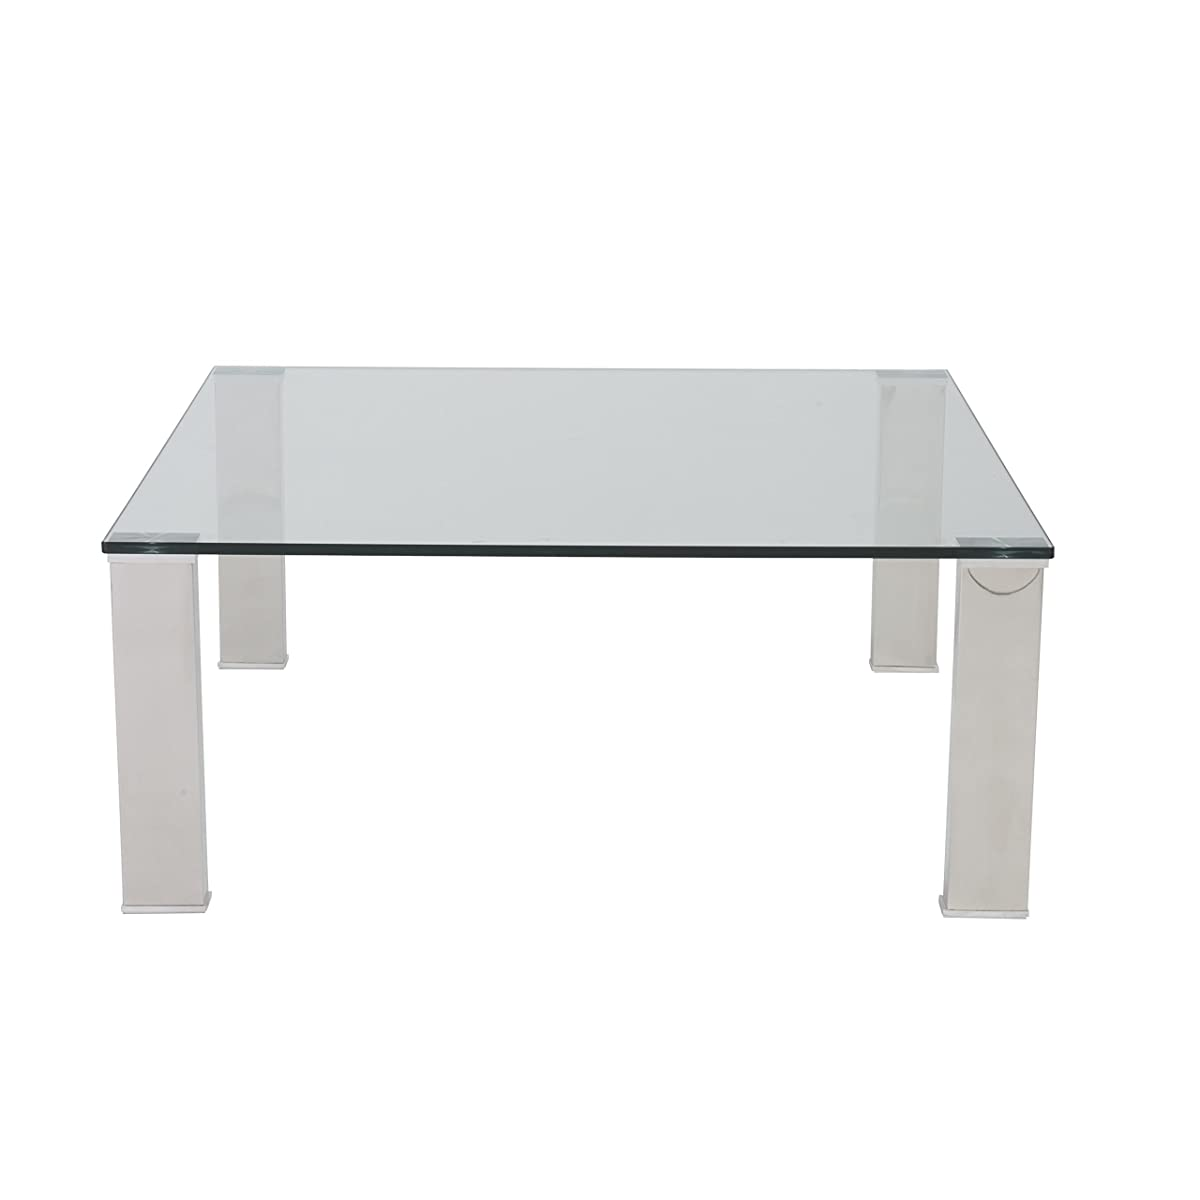 Eurø Style Beth Clear Glass Top Polished Stainless Steel Square Coffee Table